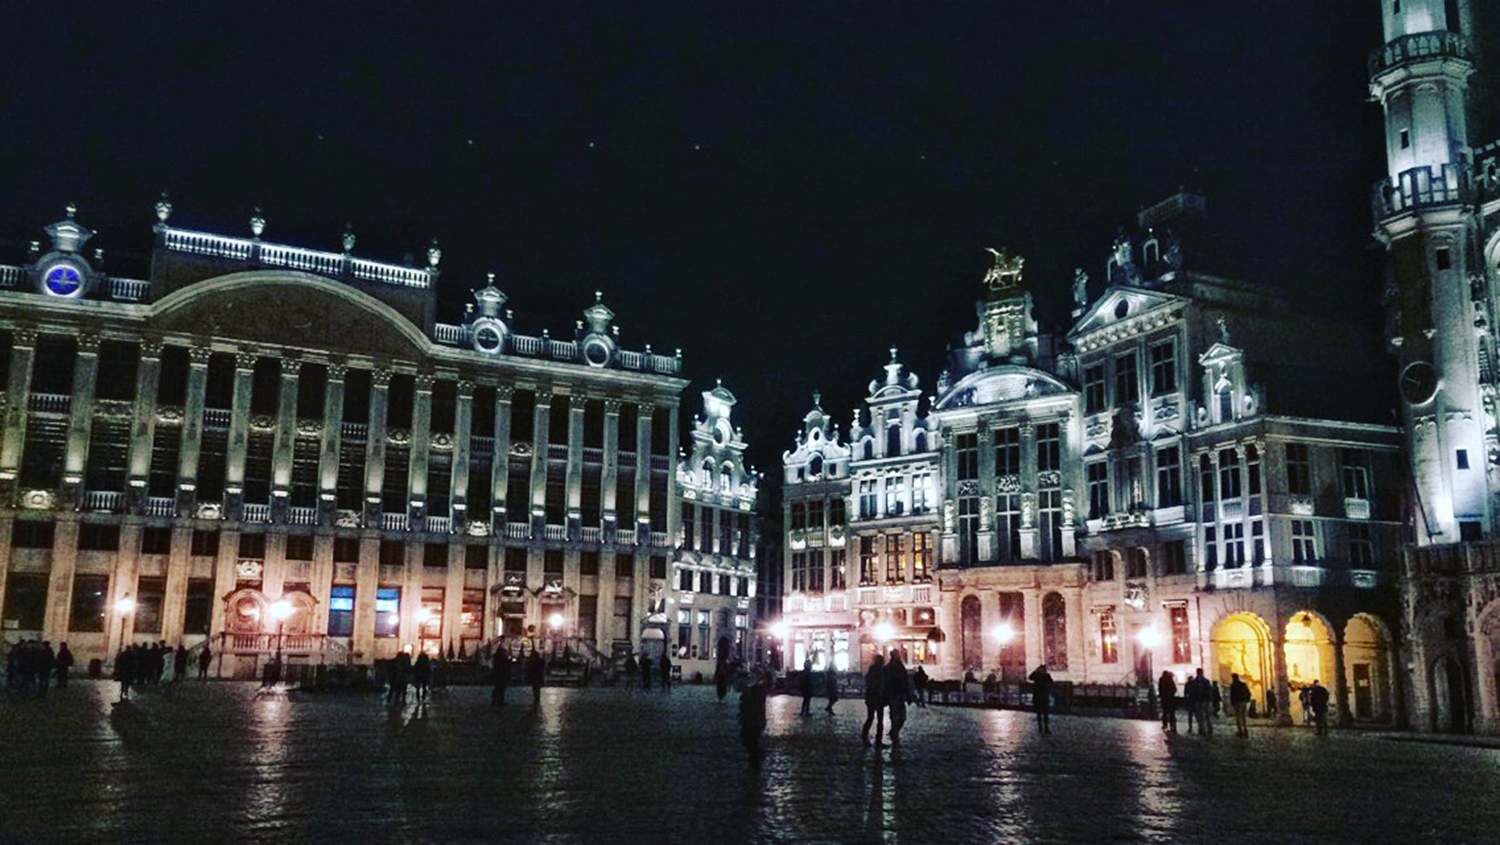 Grand-Place Brussels by night